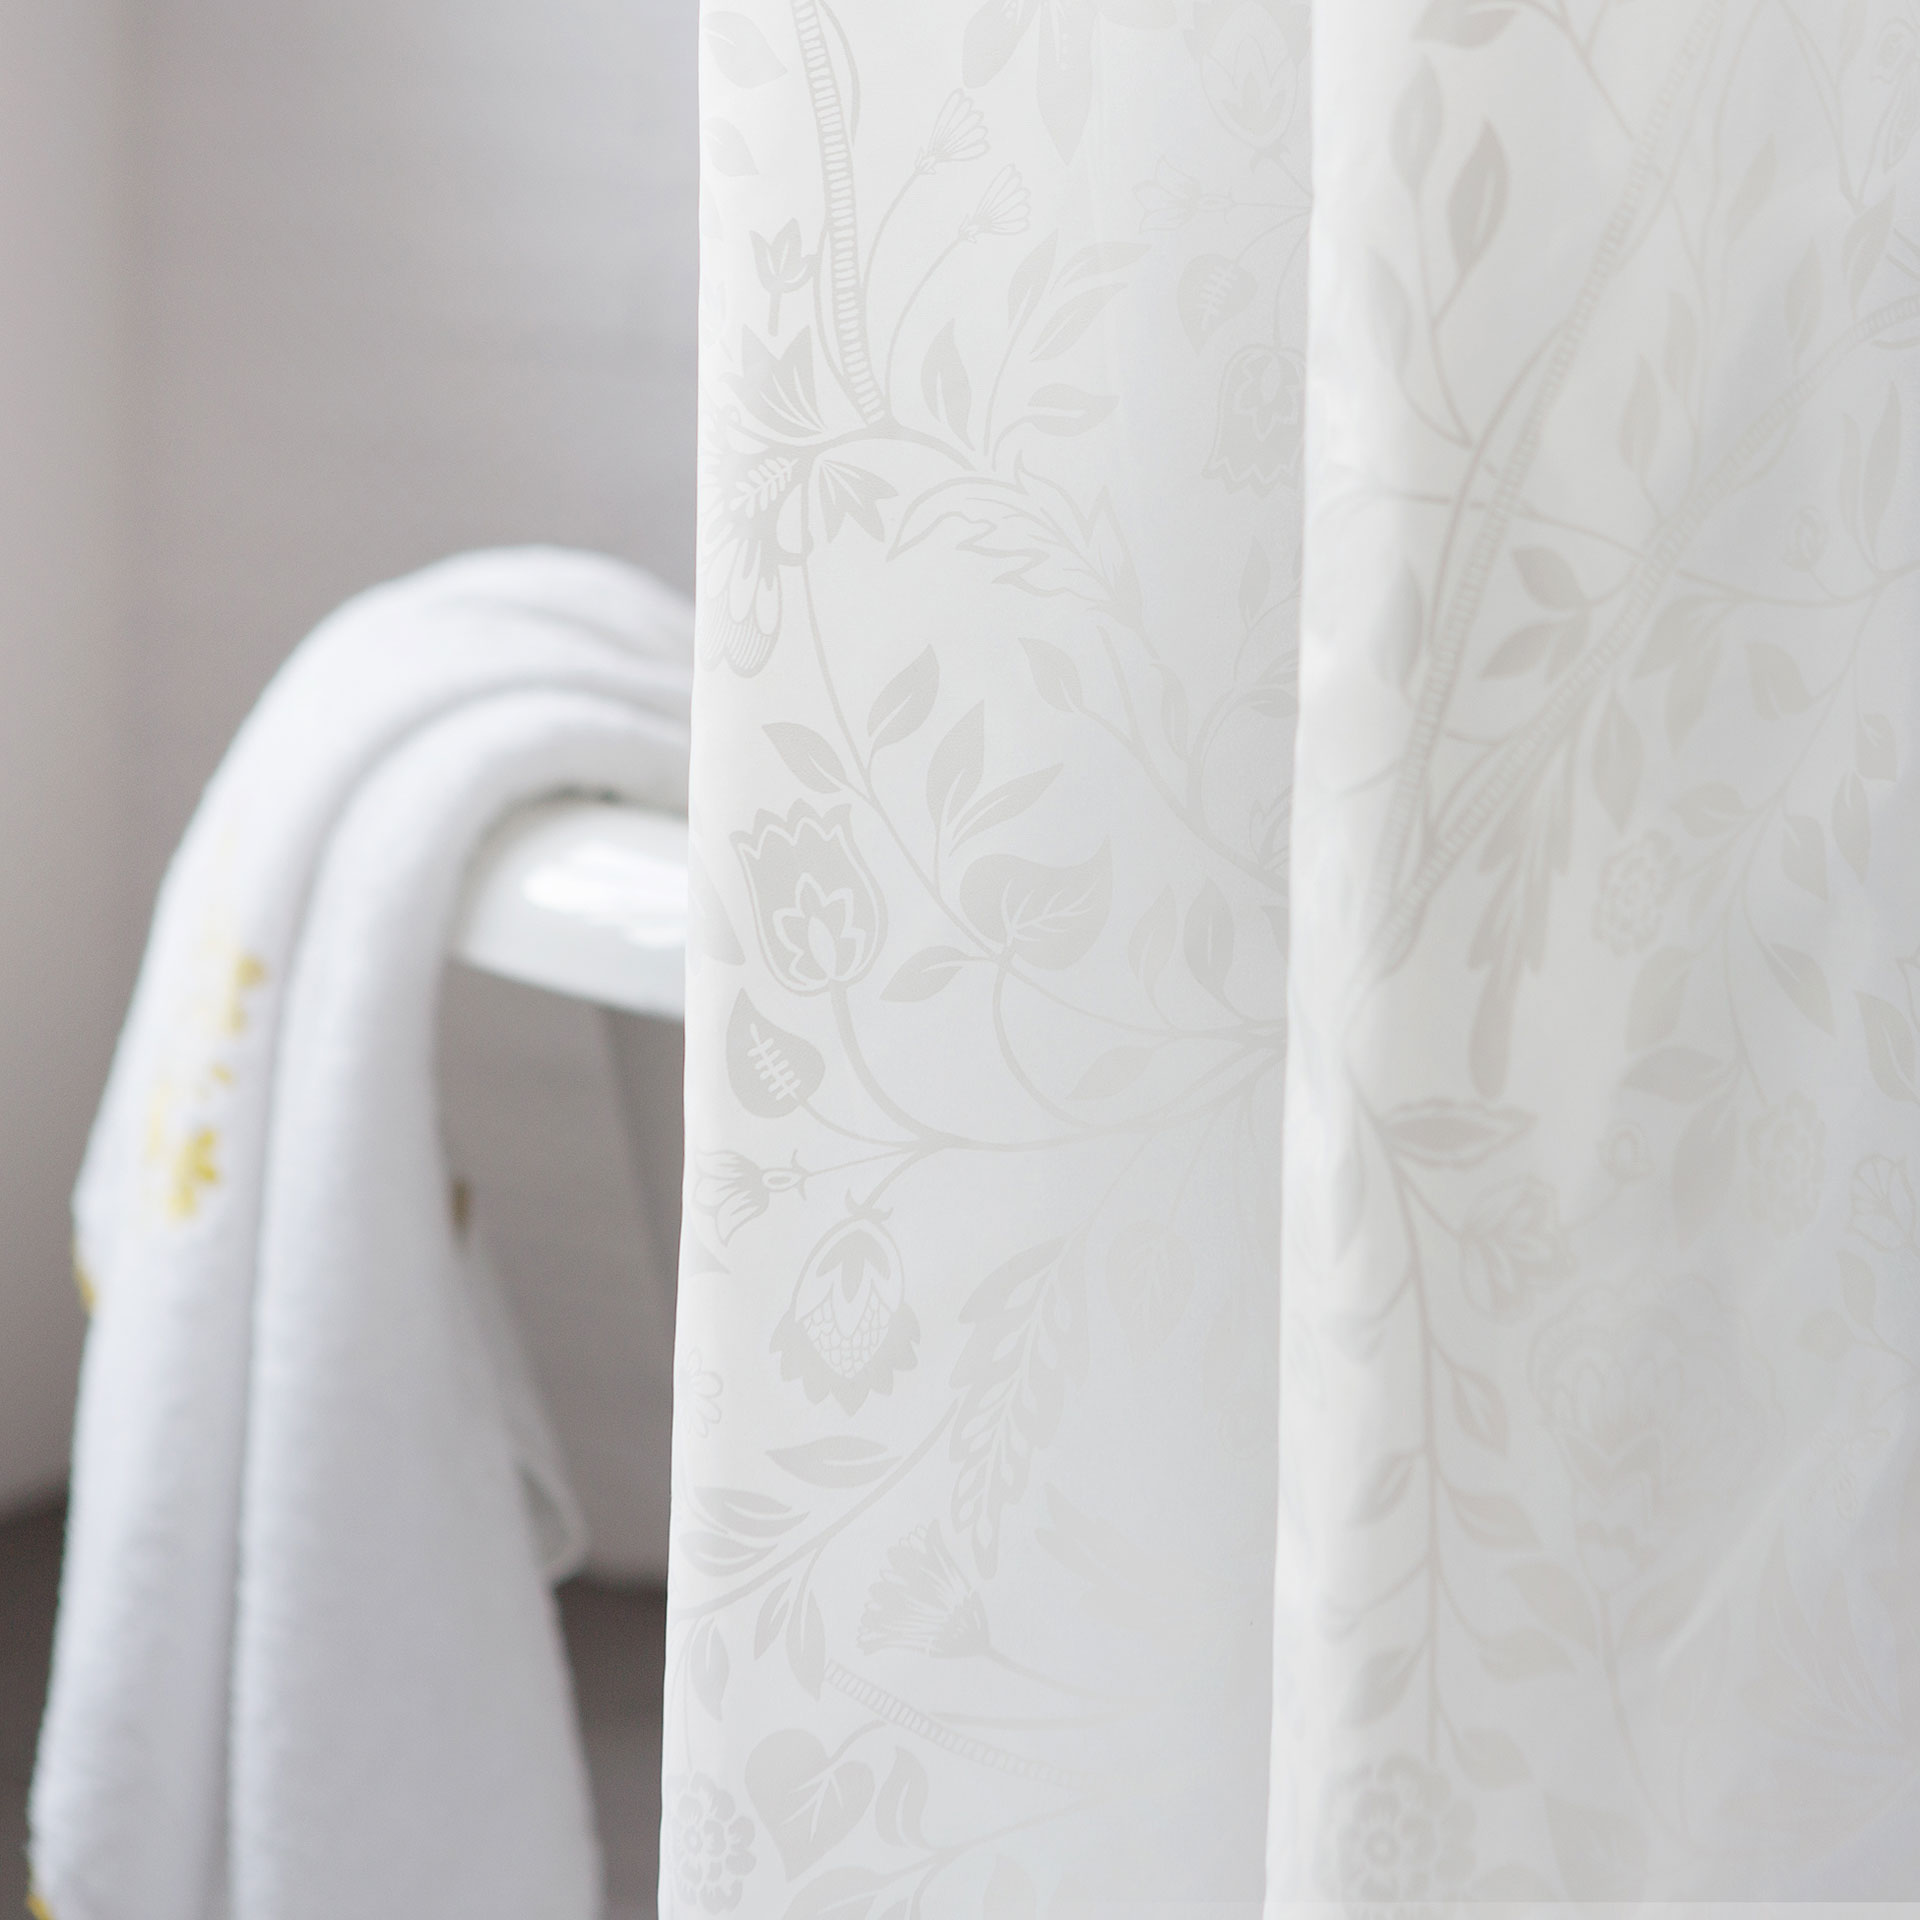 floral shower curtain  shower curtains  bathroom  zara home  -  image  of the product floral shower curtain